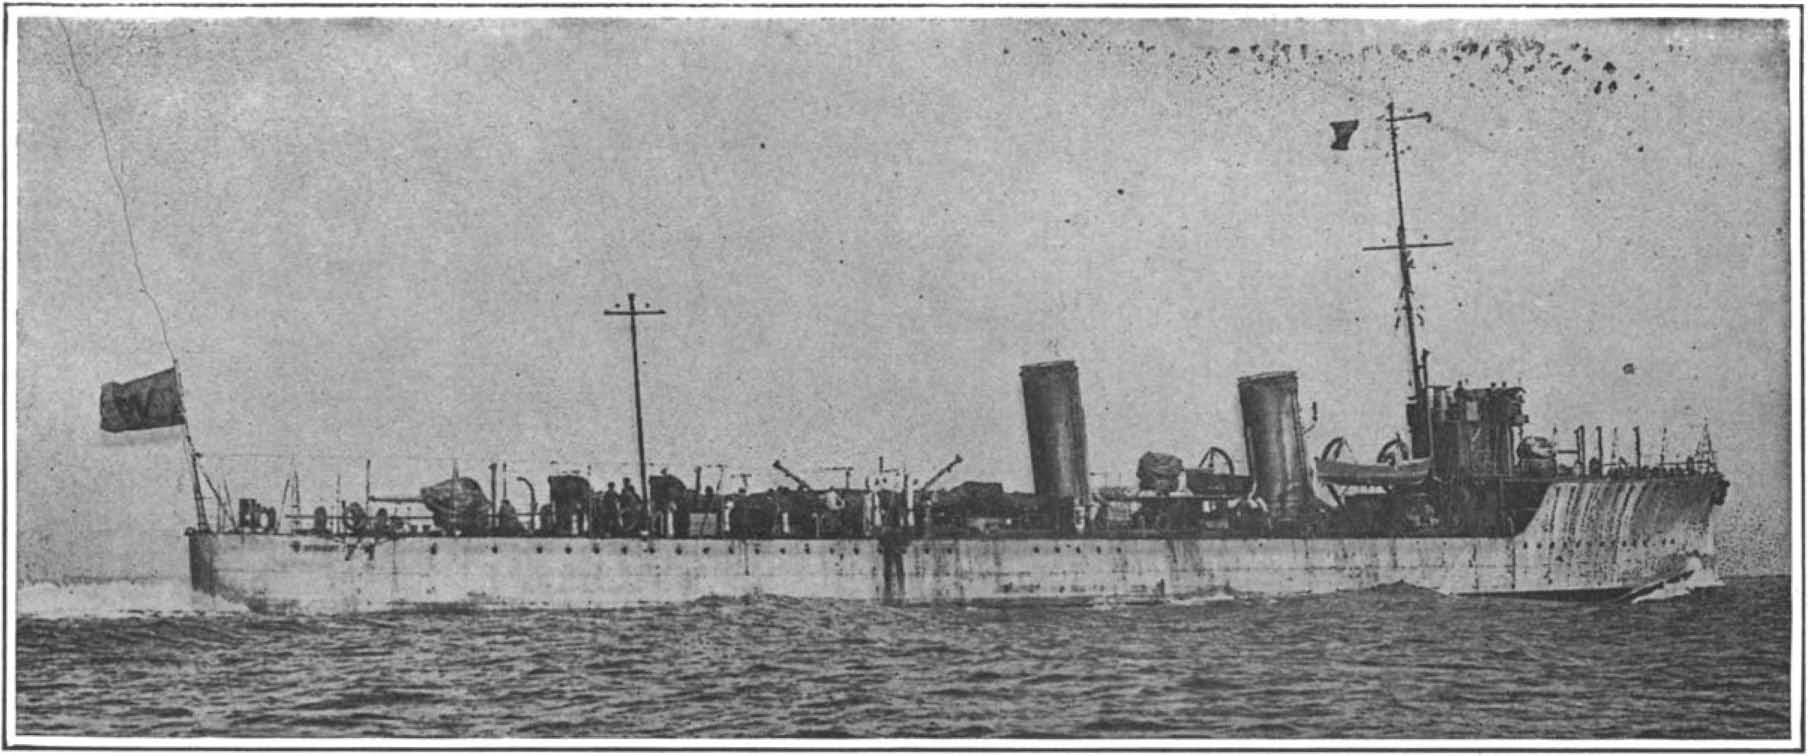 hms-laurel-destroyer